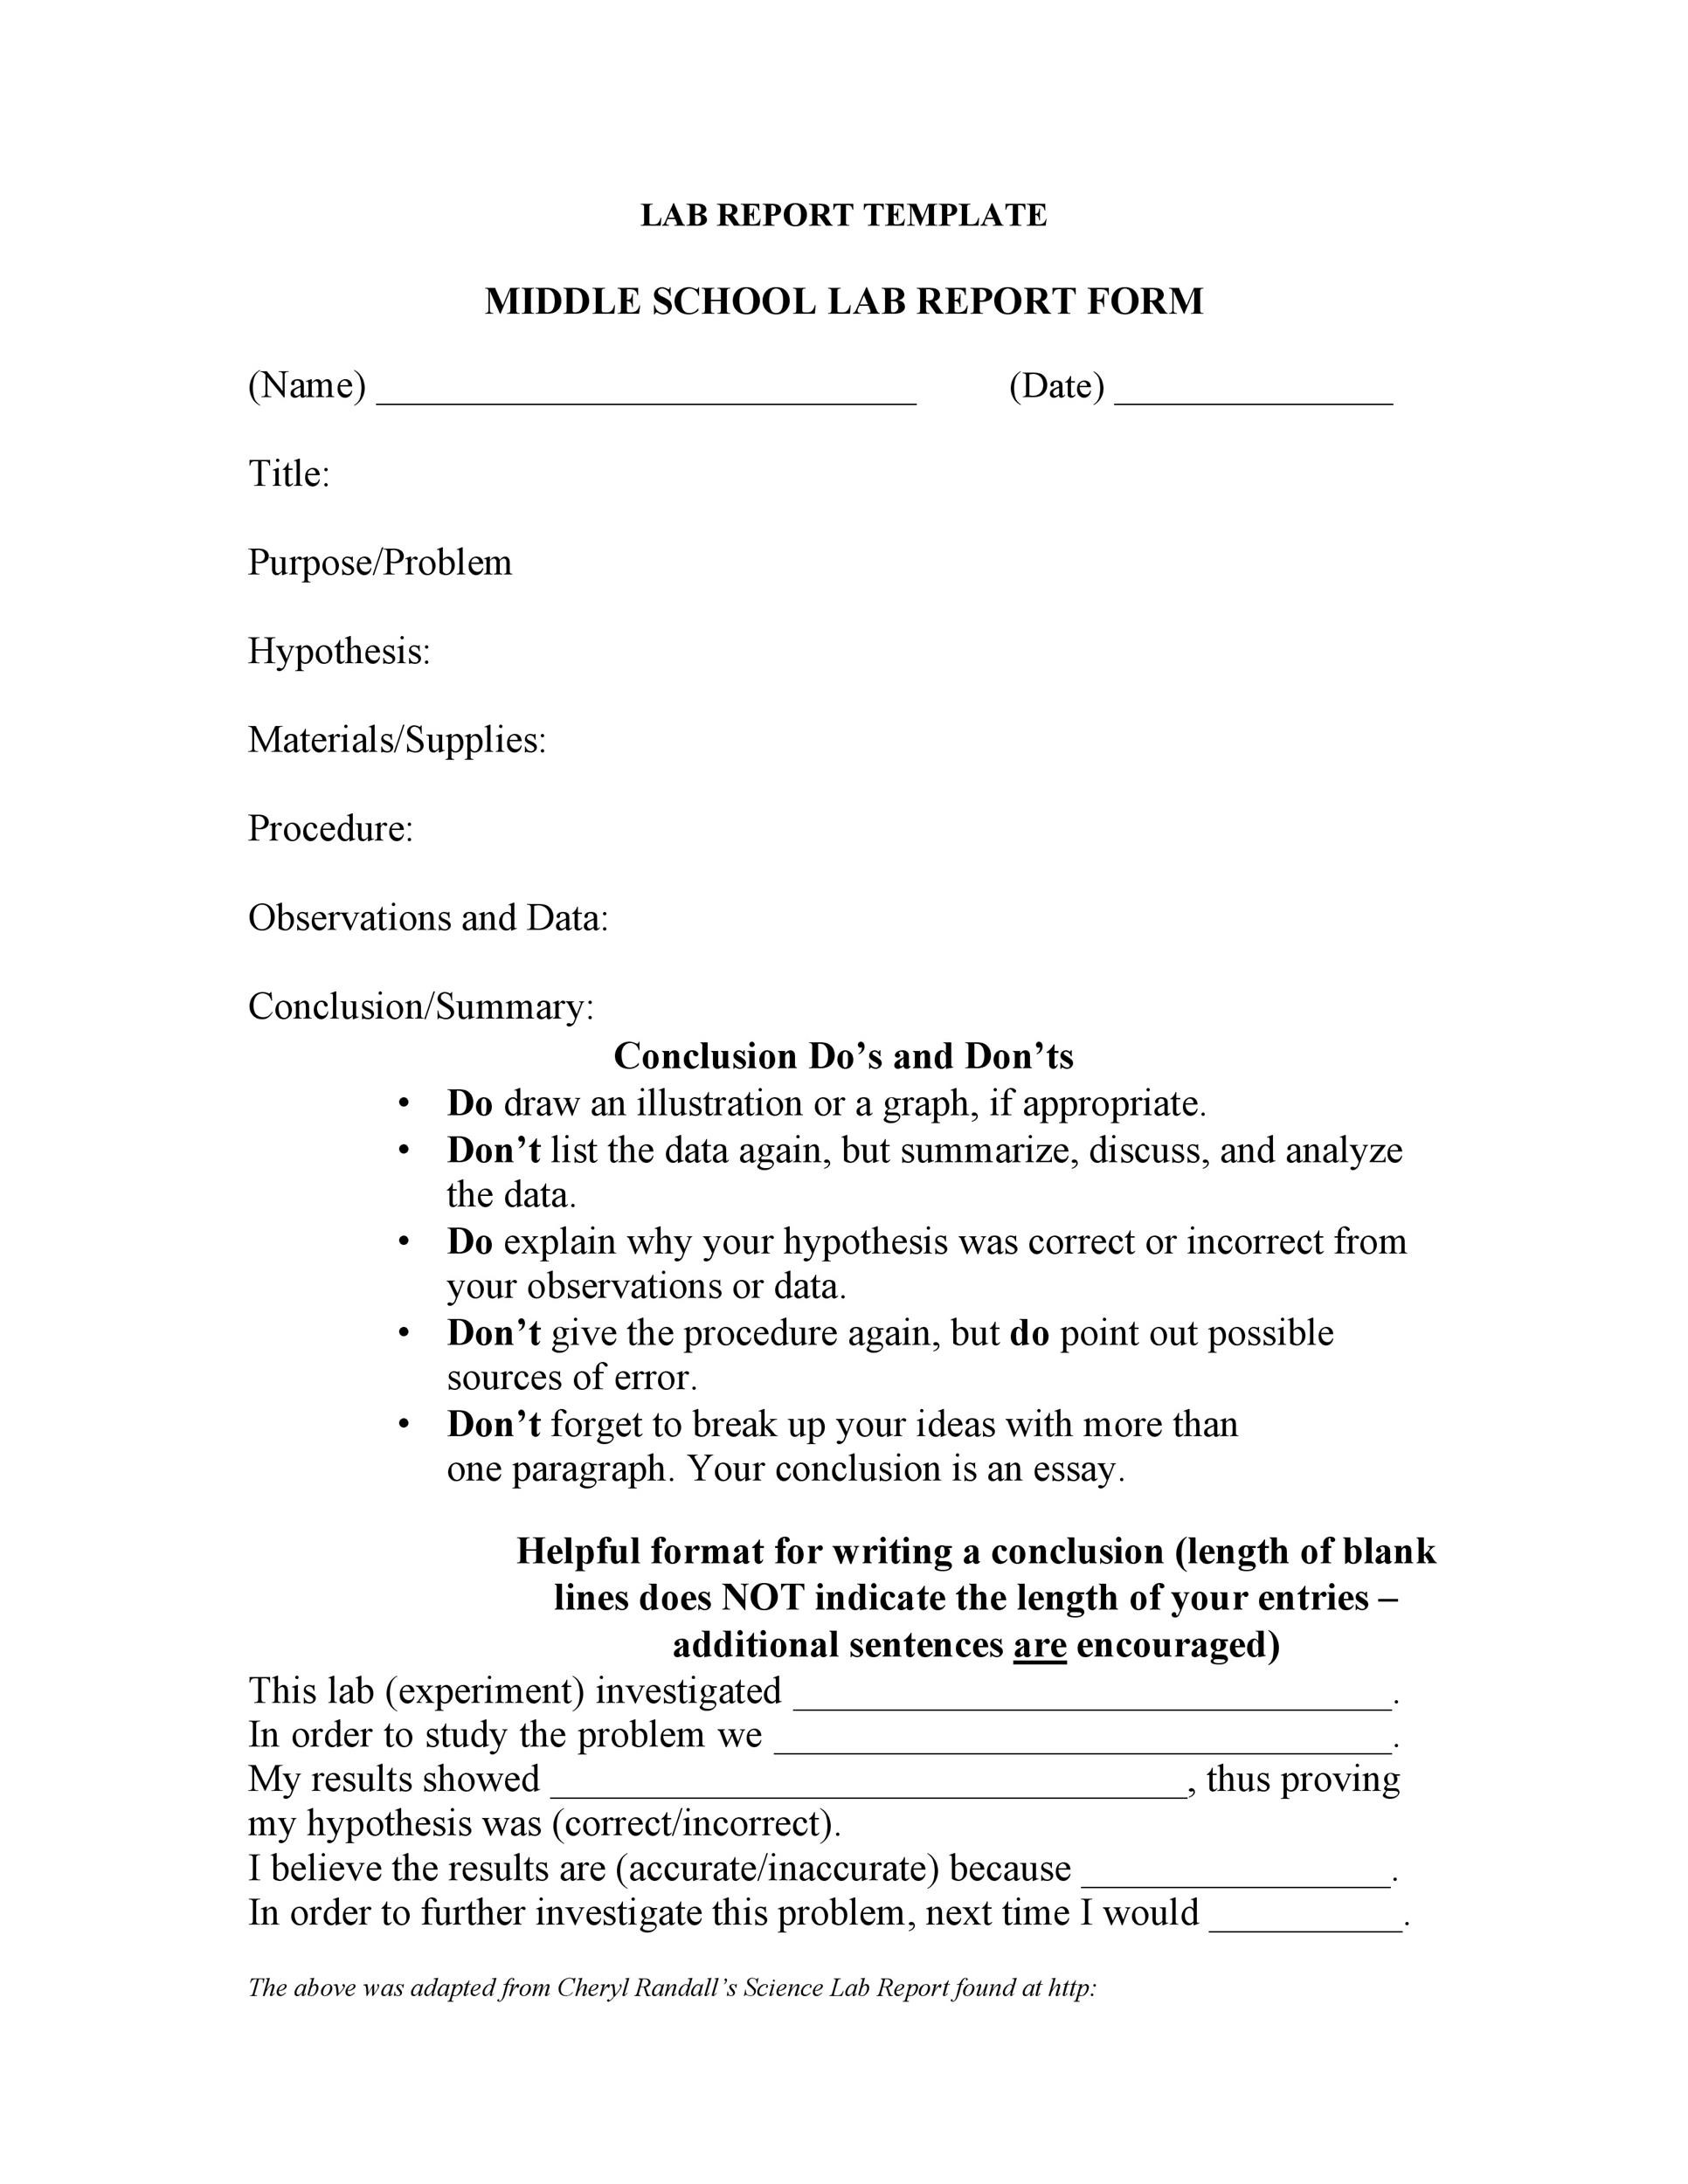 Free lab report template 25